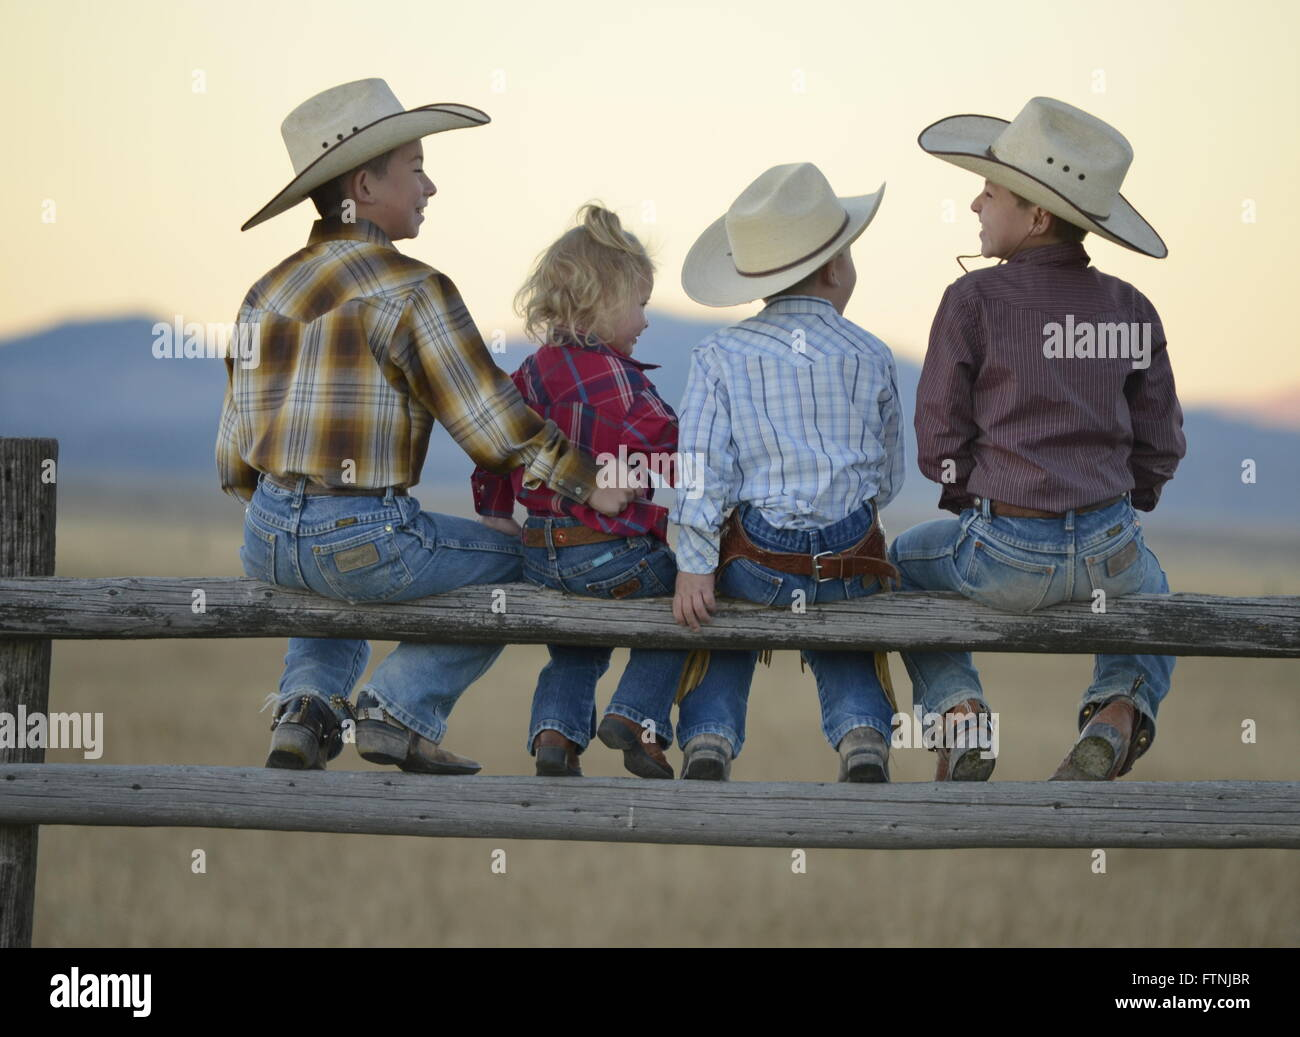 Cowboy kids sitting on old wooden fence with cowboy hats on. - Stock Image